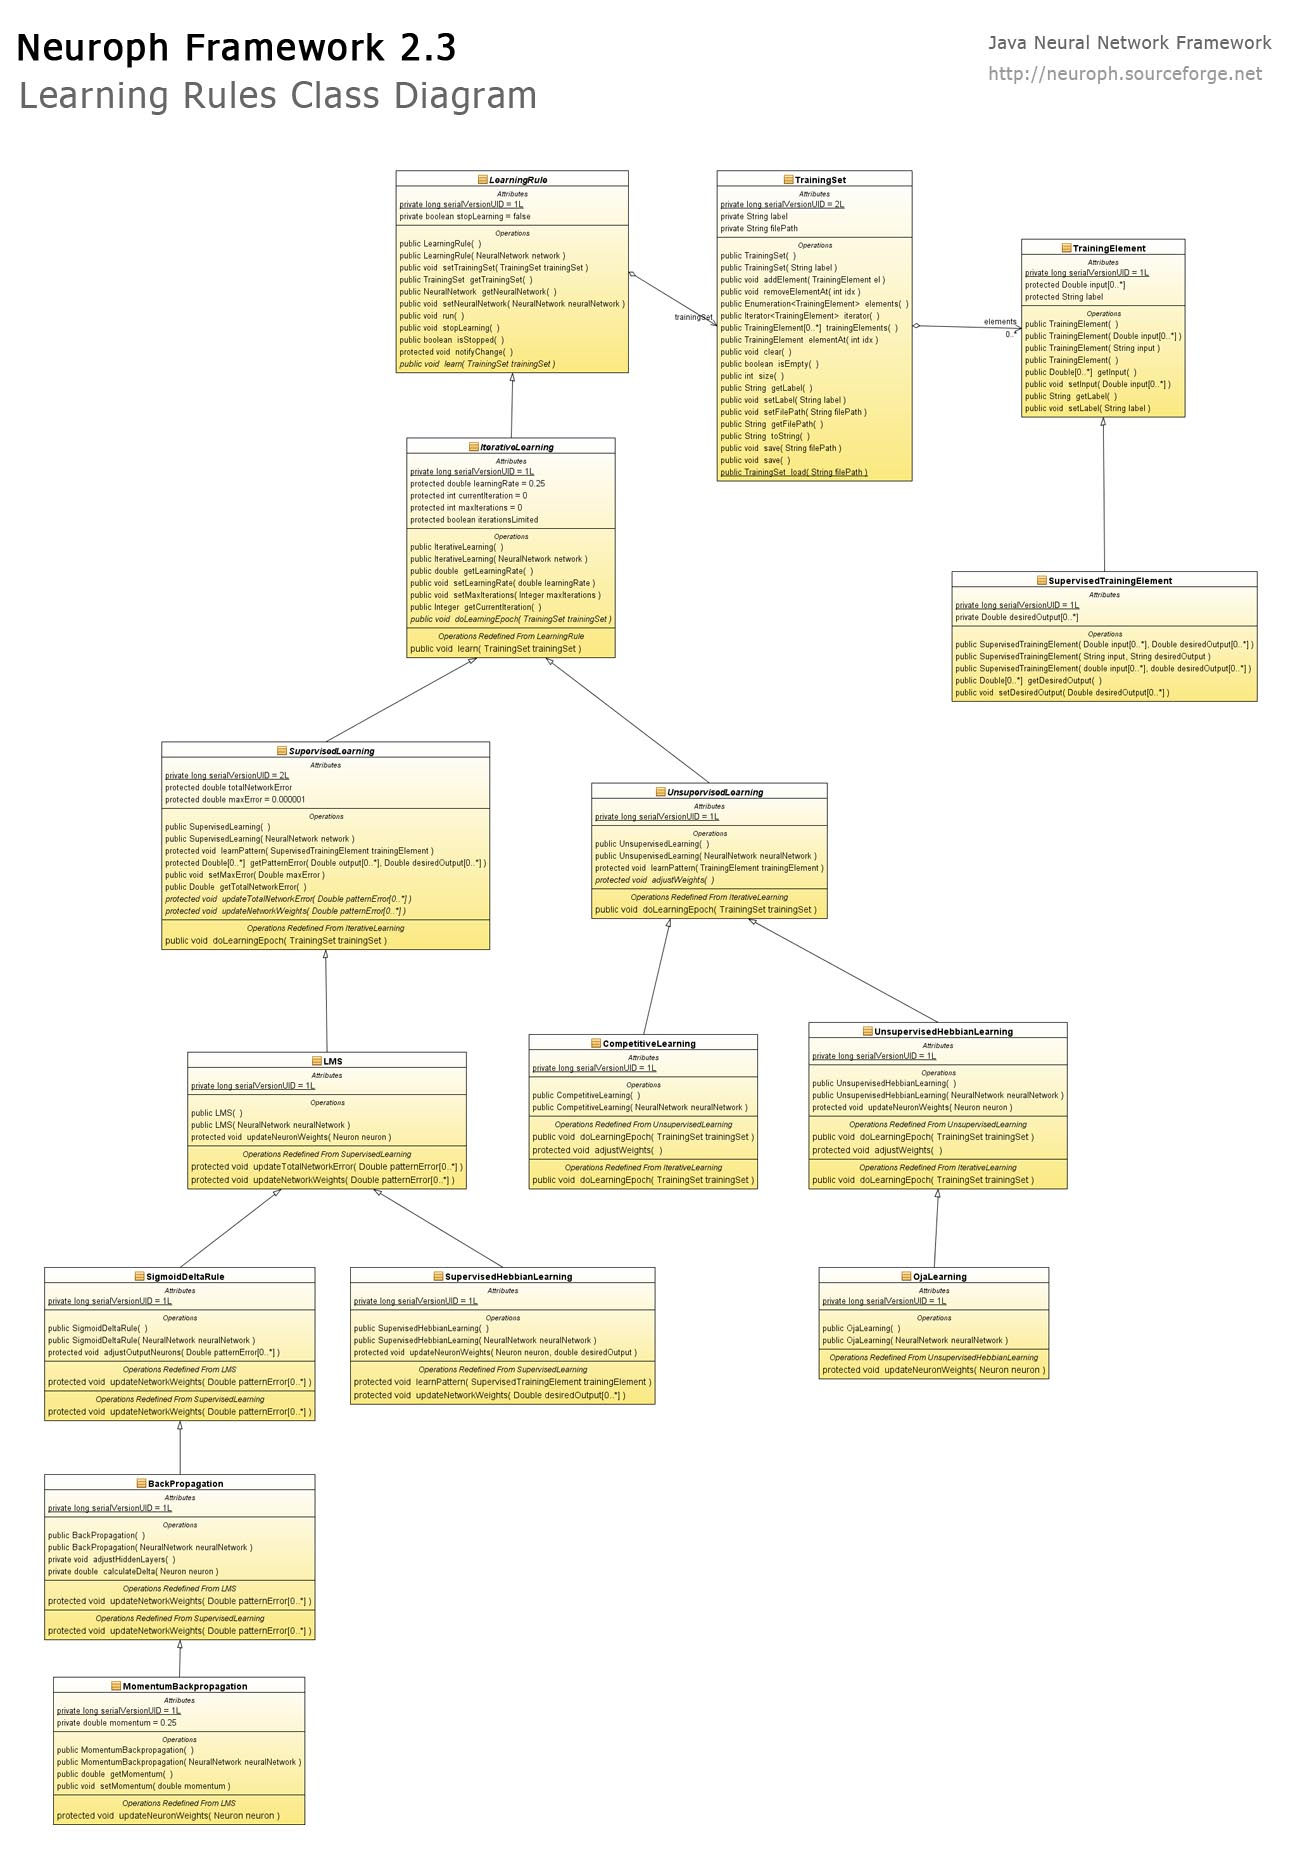 visio sequence diagram library fan center wiring uml diagrams tutorial pdf free engine image for user